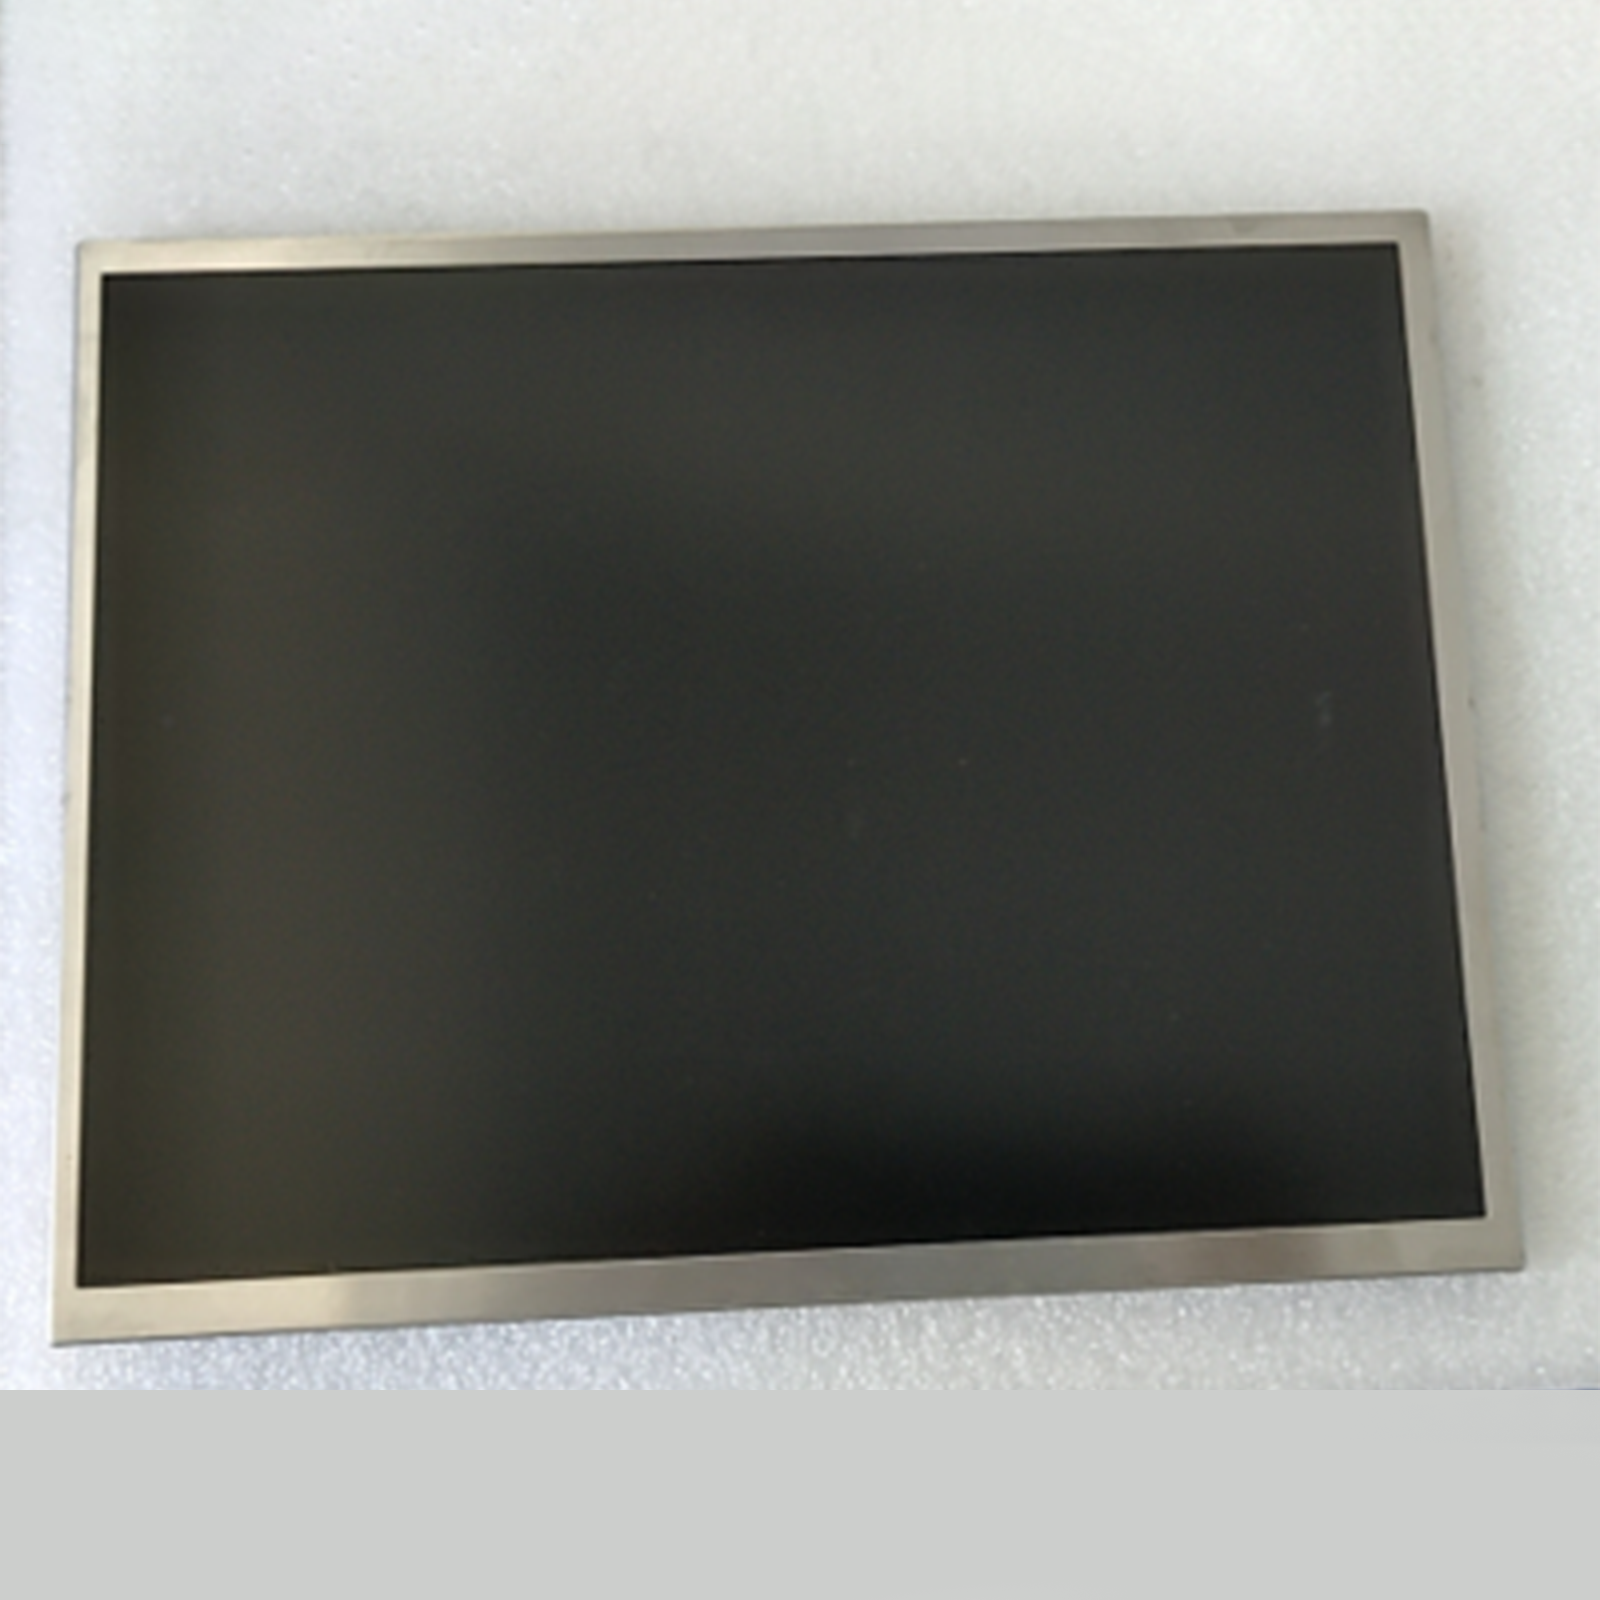 12.1 Inch For Innolux G121S1-L02 LCD Screen Display Panel 800(RGB)×600 20 Pins LVDS